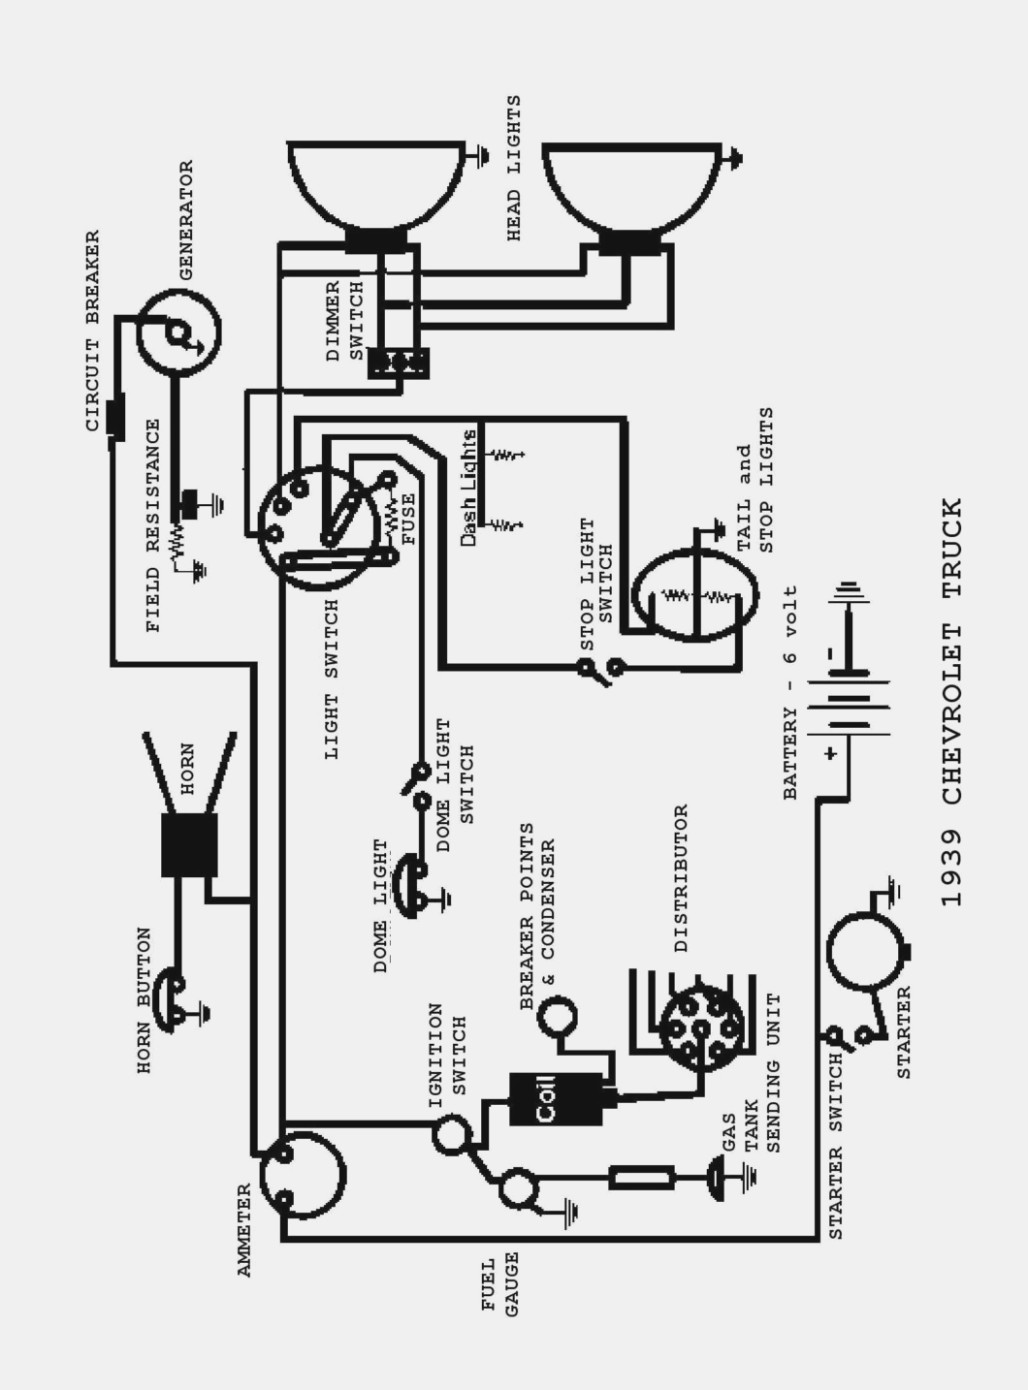 international 2007 4400 starting wiring diagrams os 7884  international 9200i wiring diagram schematic wiring  international 9200i wiring diagram